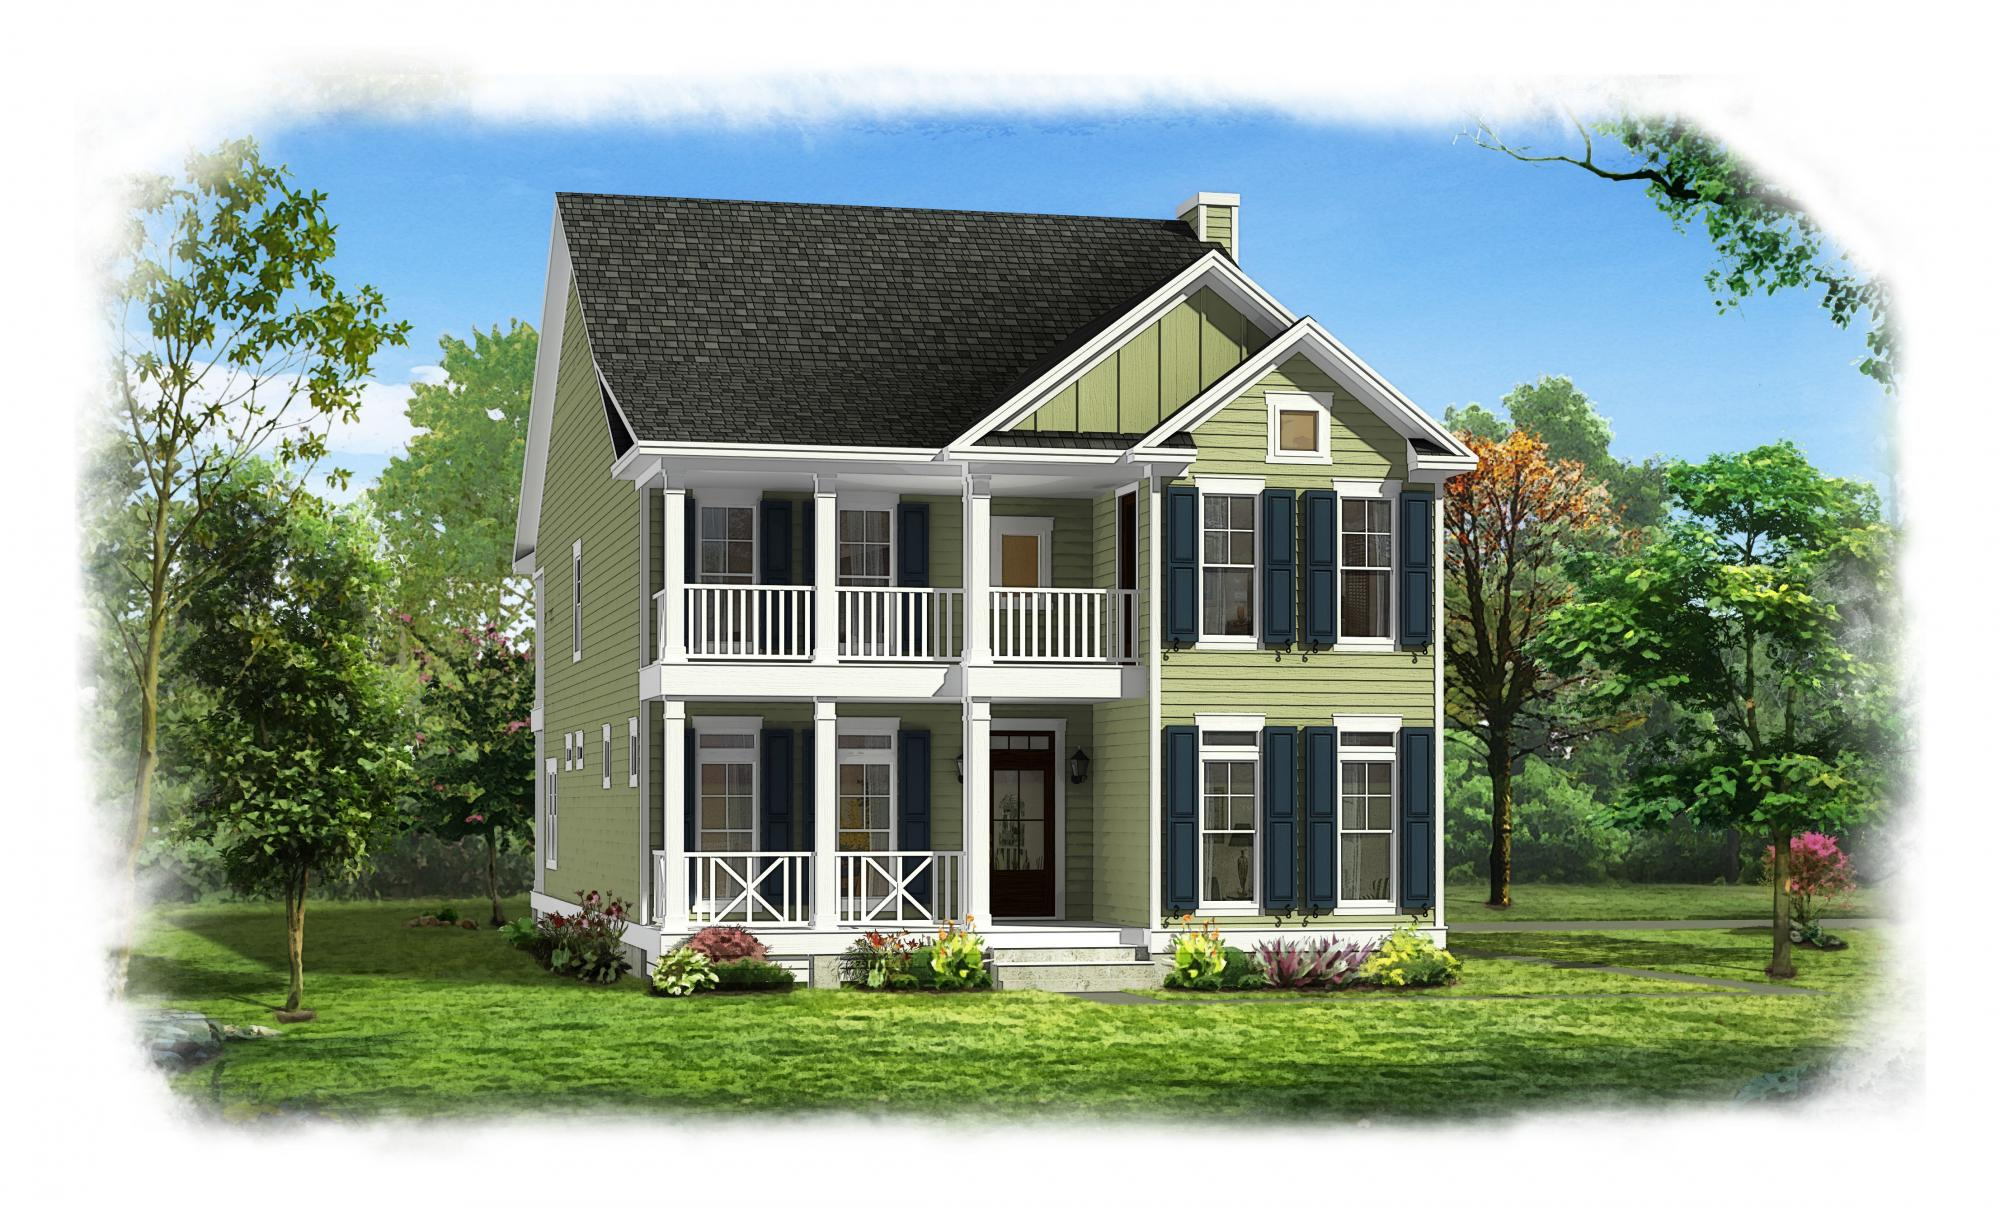 Seabrook custom homes savannah ga konter quality homes for Custom home builders savannah ga